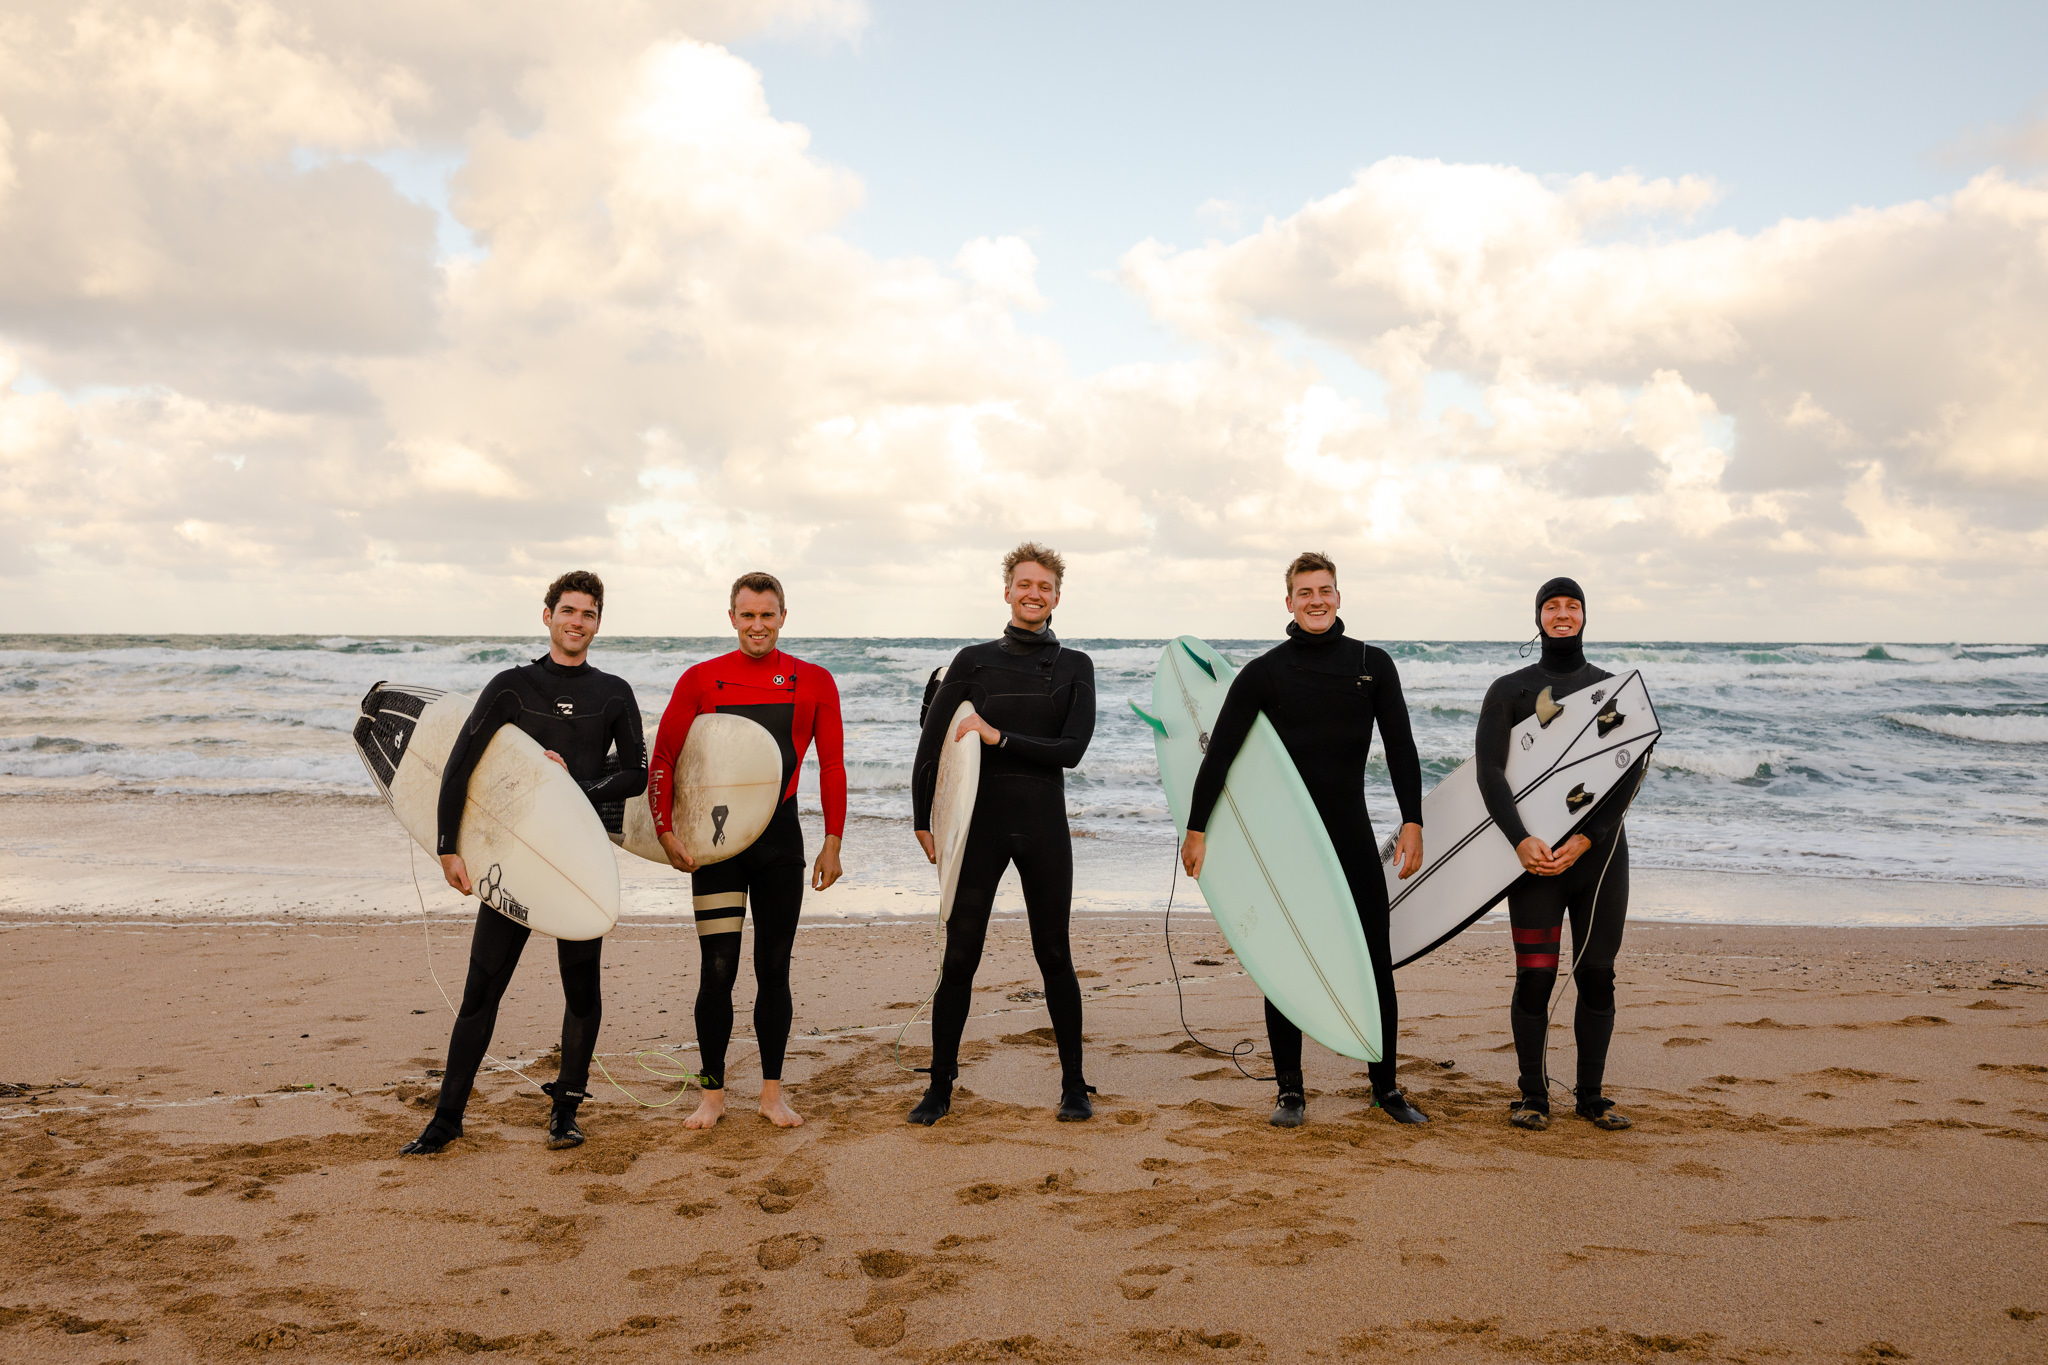 5 men wearing wetsuits standing on the beach carrying surfboards